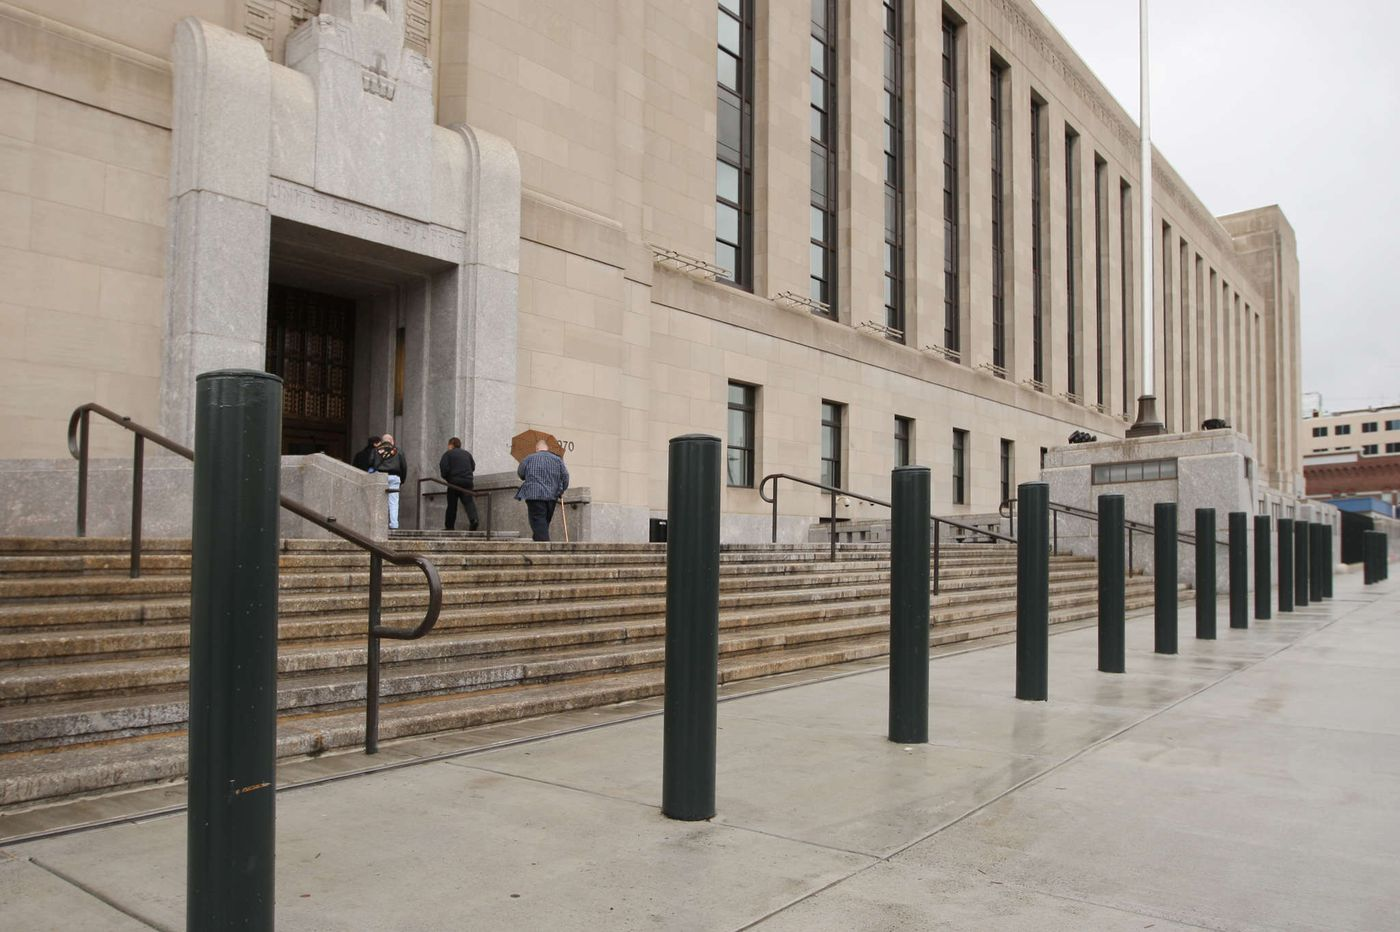 Tax-law change passes, with uncertain impact on Philly commercial property deals